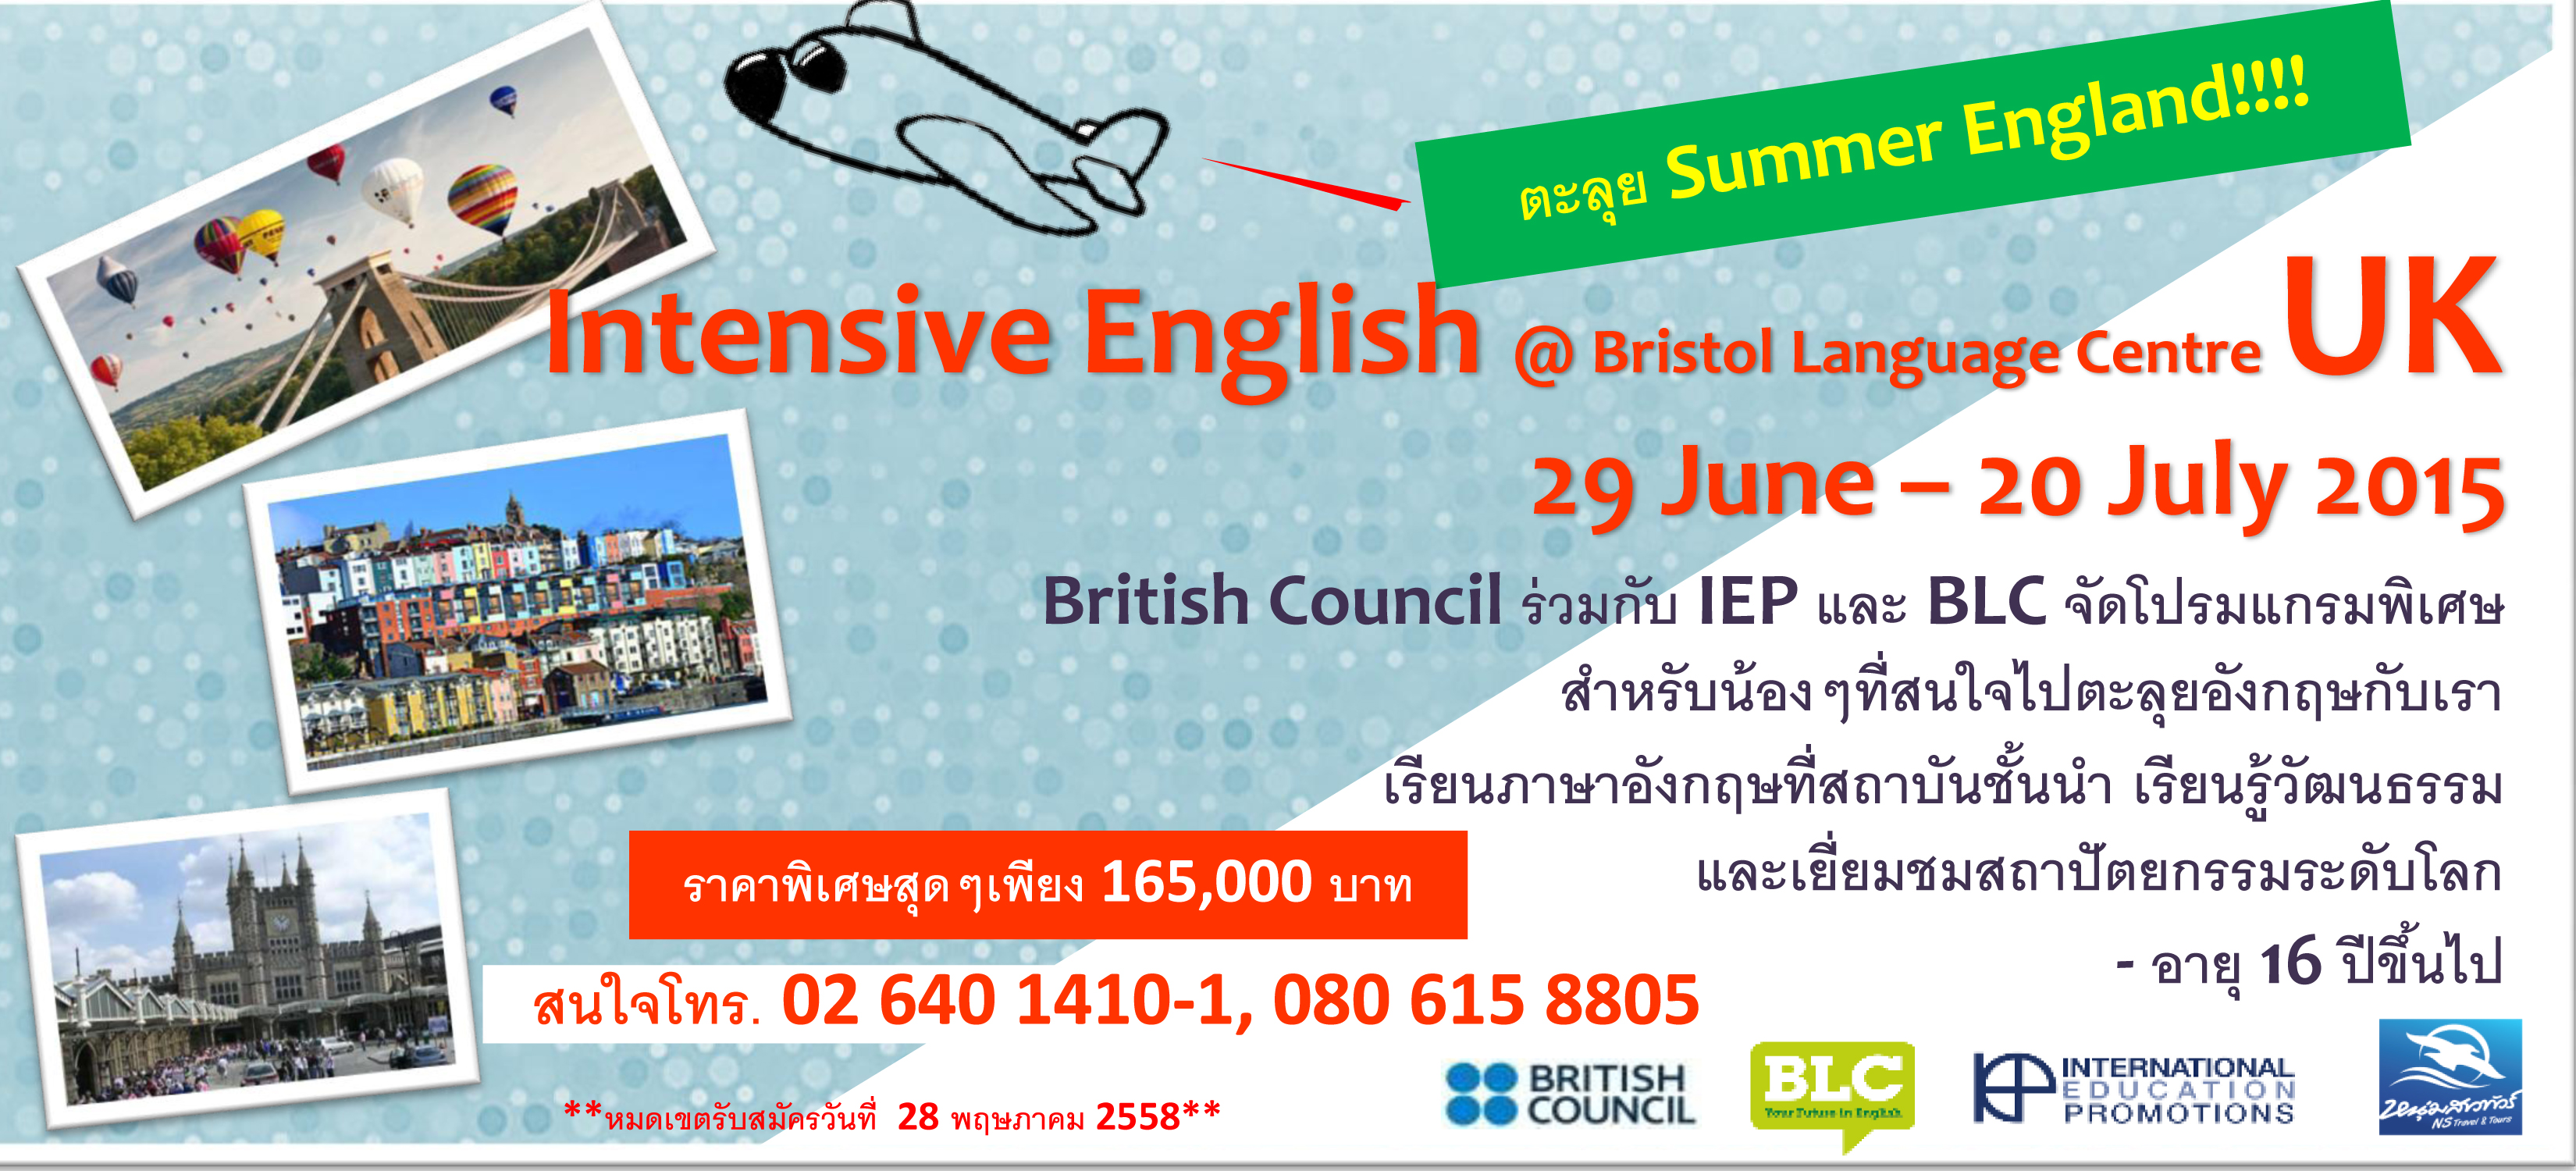 English Intensive Course, UK July 2015